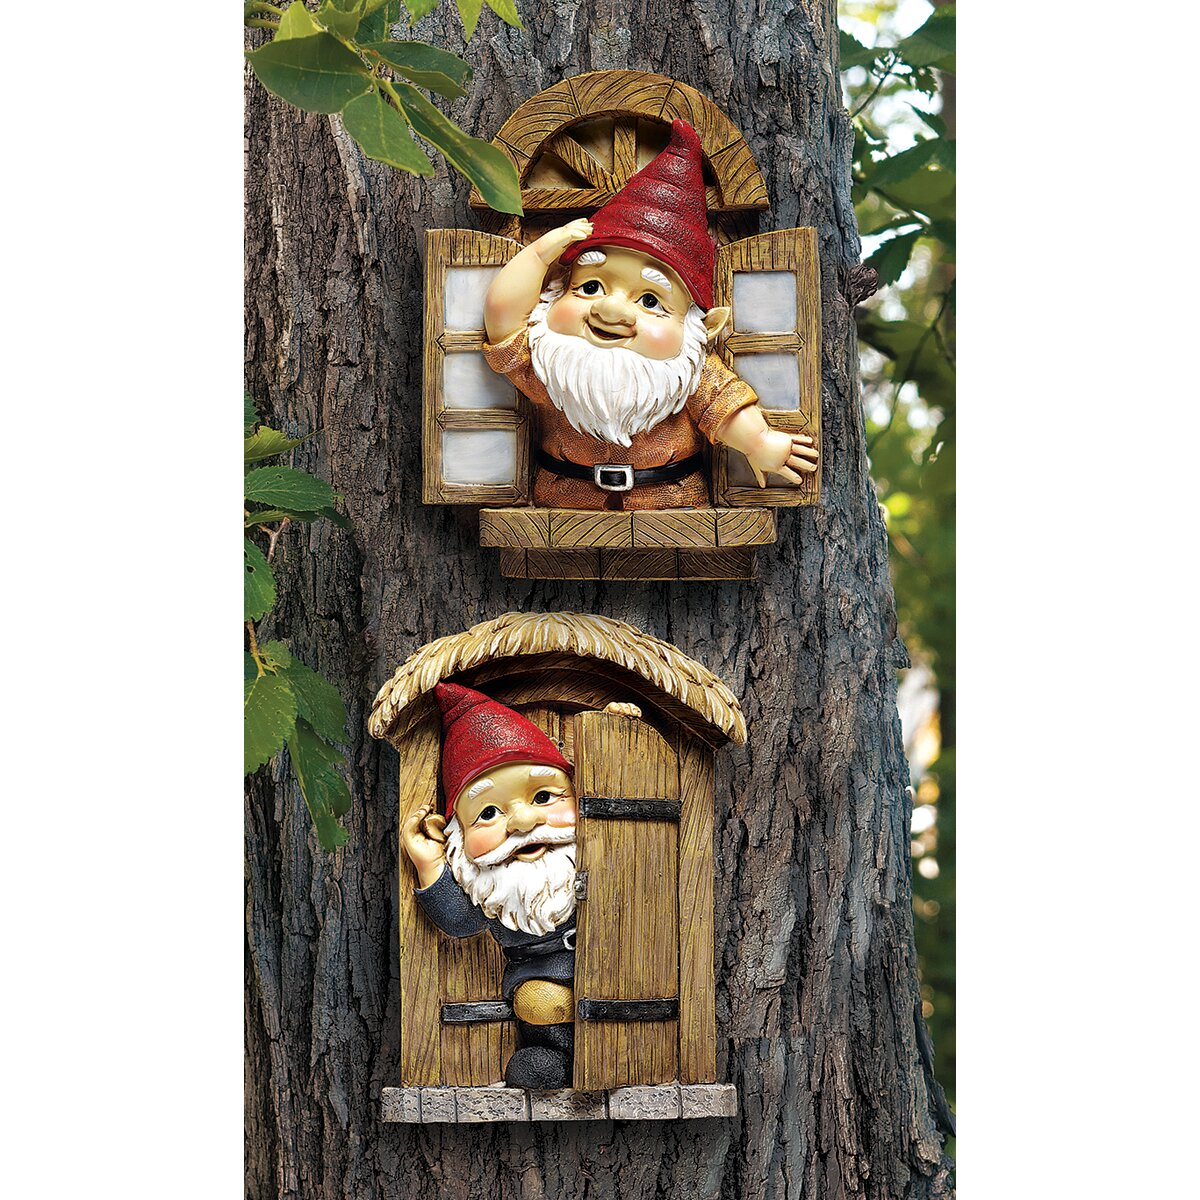 Gnome In Garden: Design Toscano The Knothole Gnomes Garden Welcome Tree